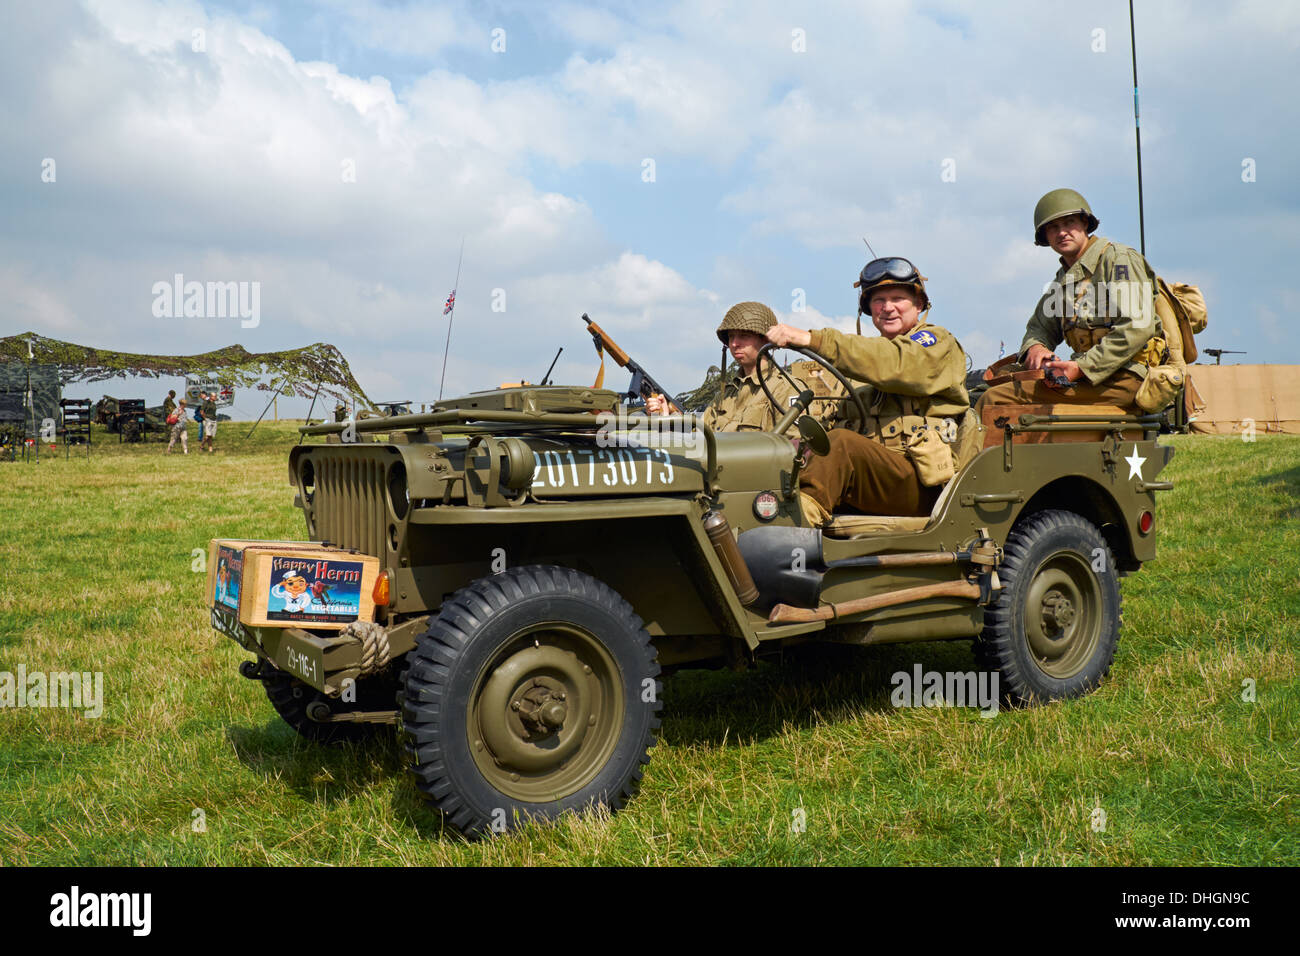 hight resolution of men posing in ww2 us army uniforms in a 1943 willys mb jeep rauceby war